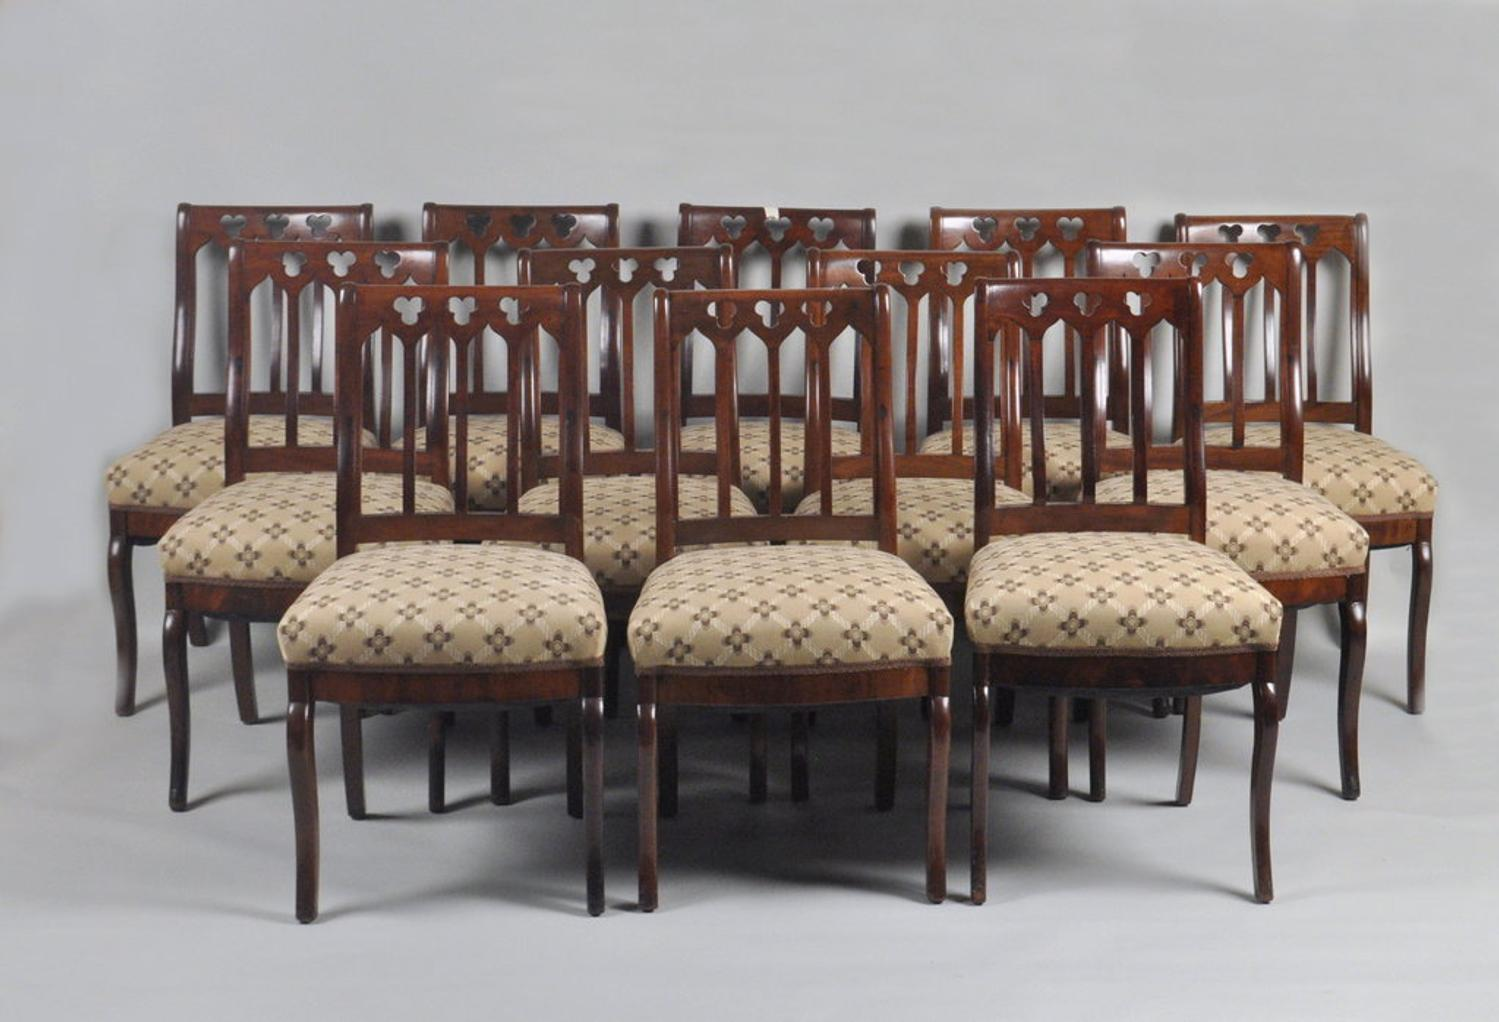 President lincolns chairs and michael jacksons coffee table among 500 lots of diverse fine estate property at schwenke october 10th auction